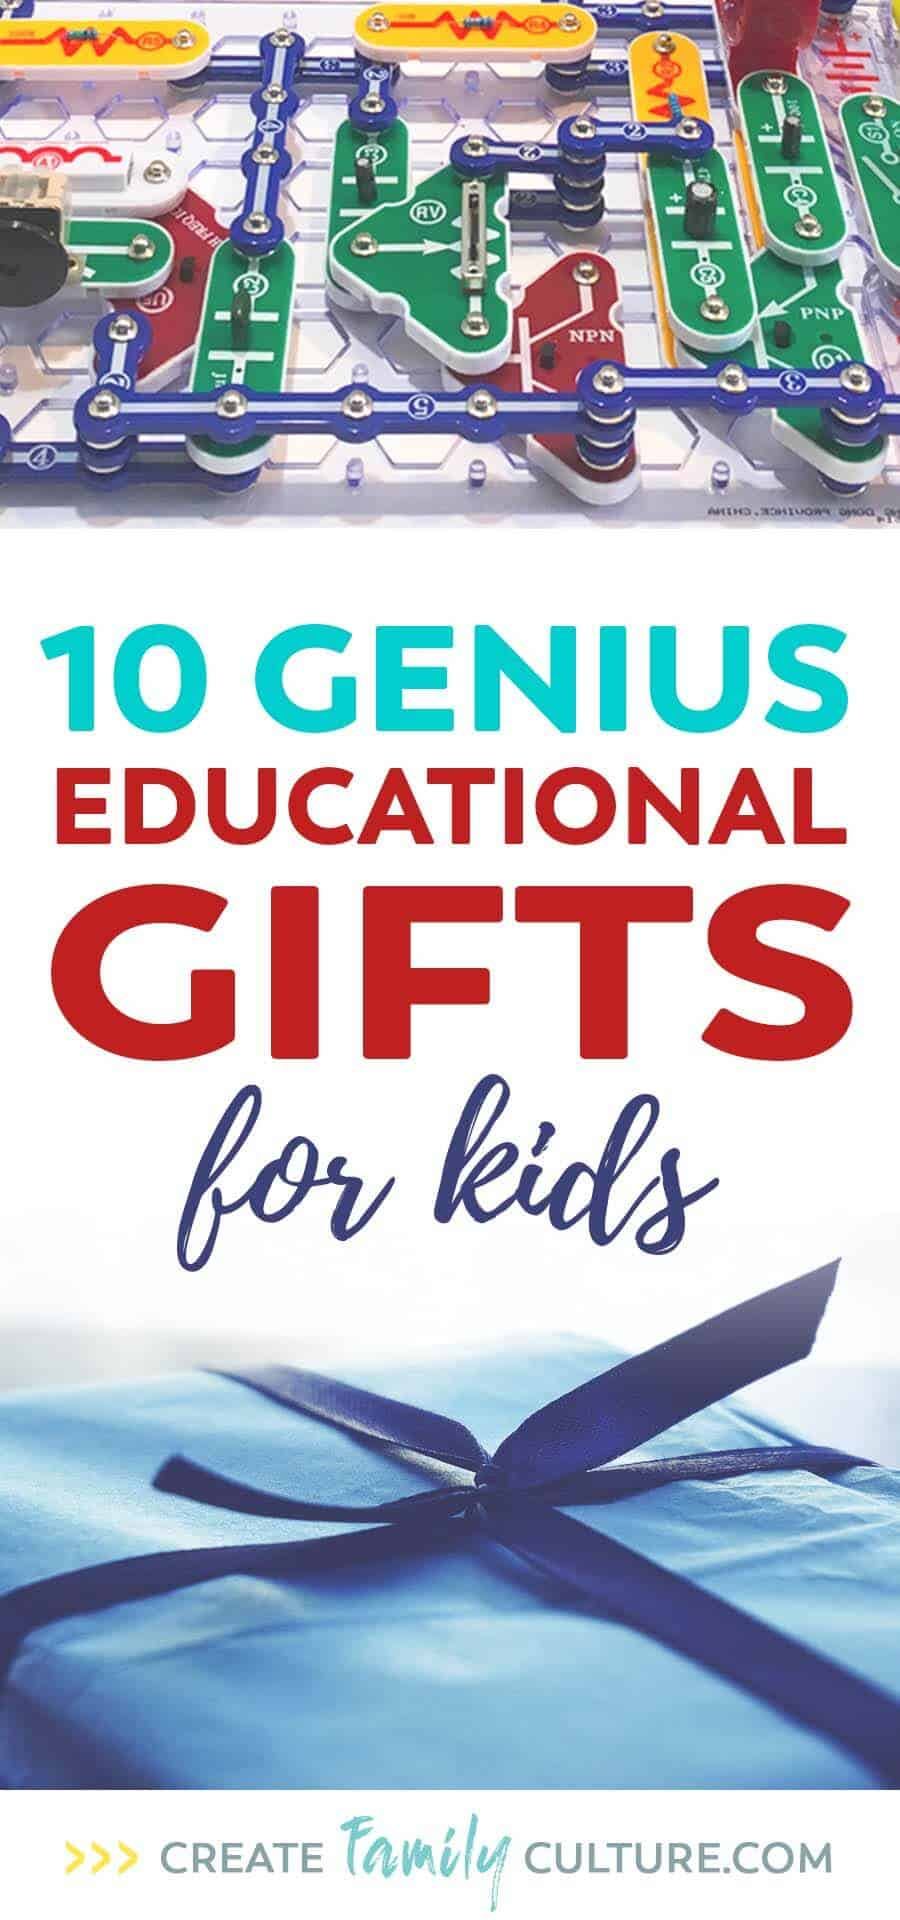 10 Genius educational gifts for kids. Learning toys for classrooms and homeschool. STEM toys and creative games, activities for elementary students.